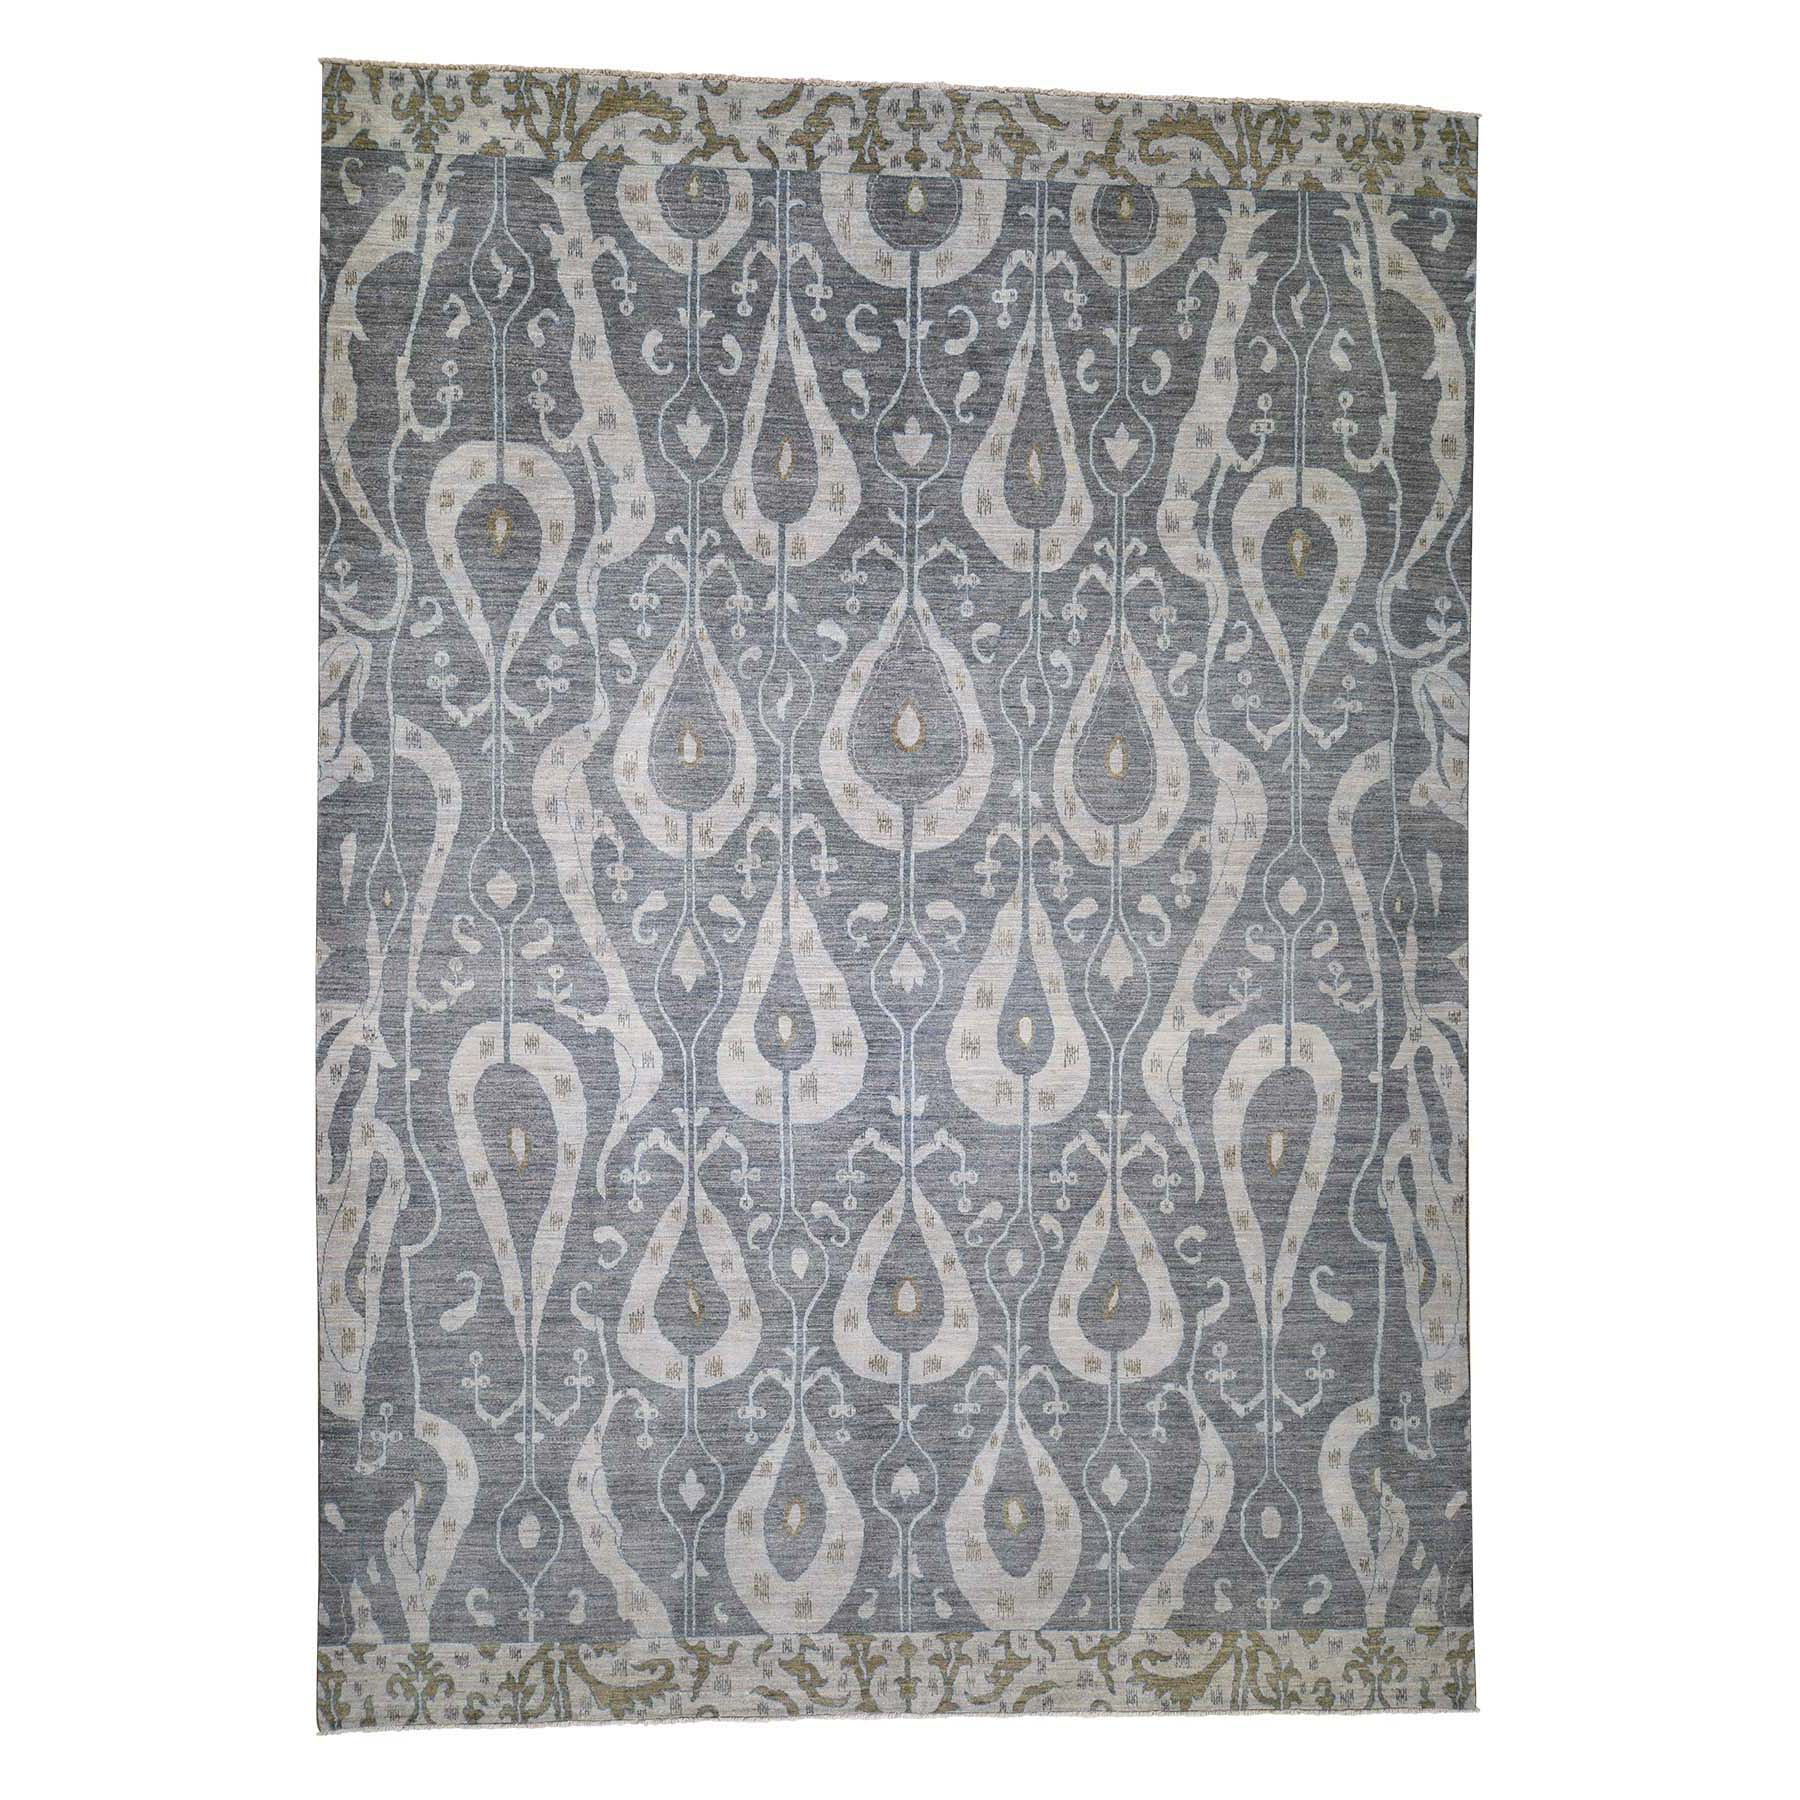 Eclectic and Bohemian Collection Hand Knotted Grey Rug No: 189572